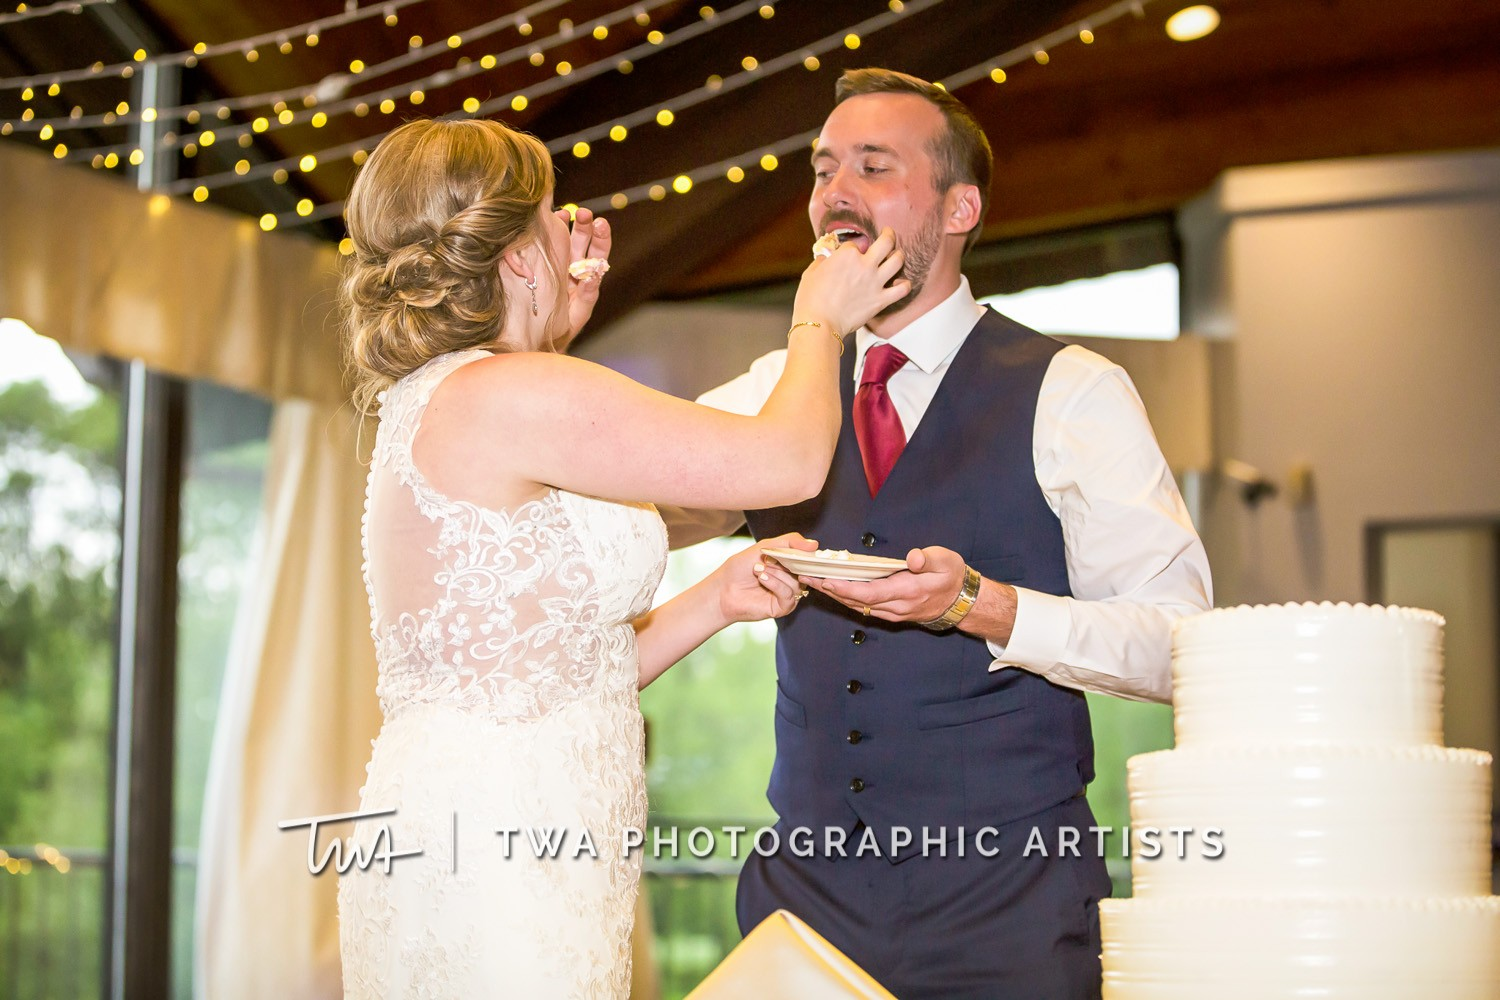 Chicago-Wedding-Photographer-TWA-Photographic-Artists-White-Pines-Banquets_Petersen_Sherman_ZZ_DL-063_1187